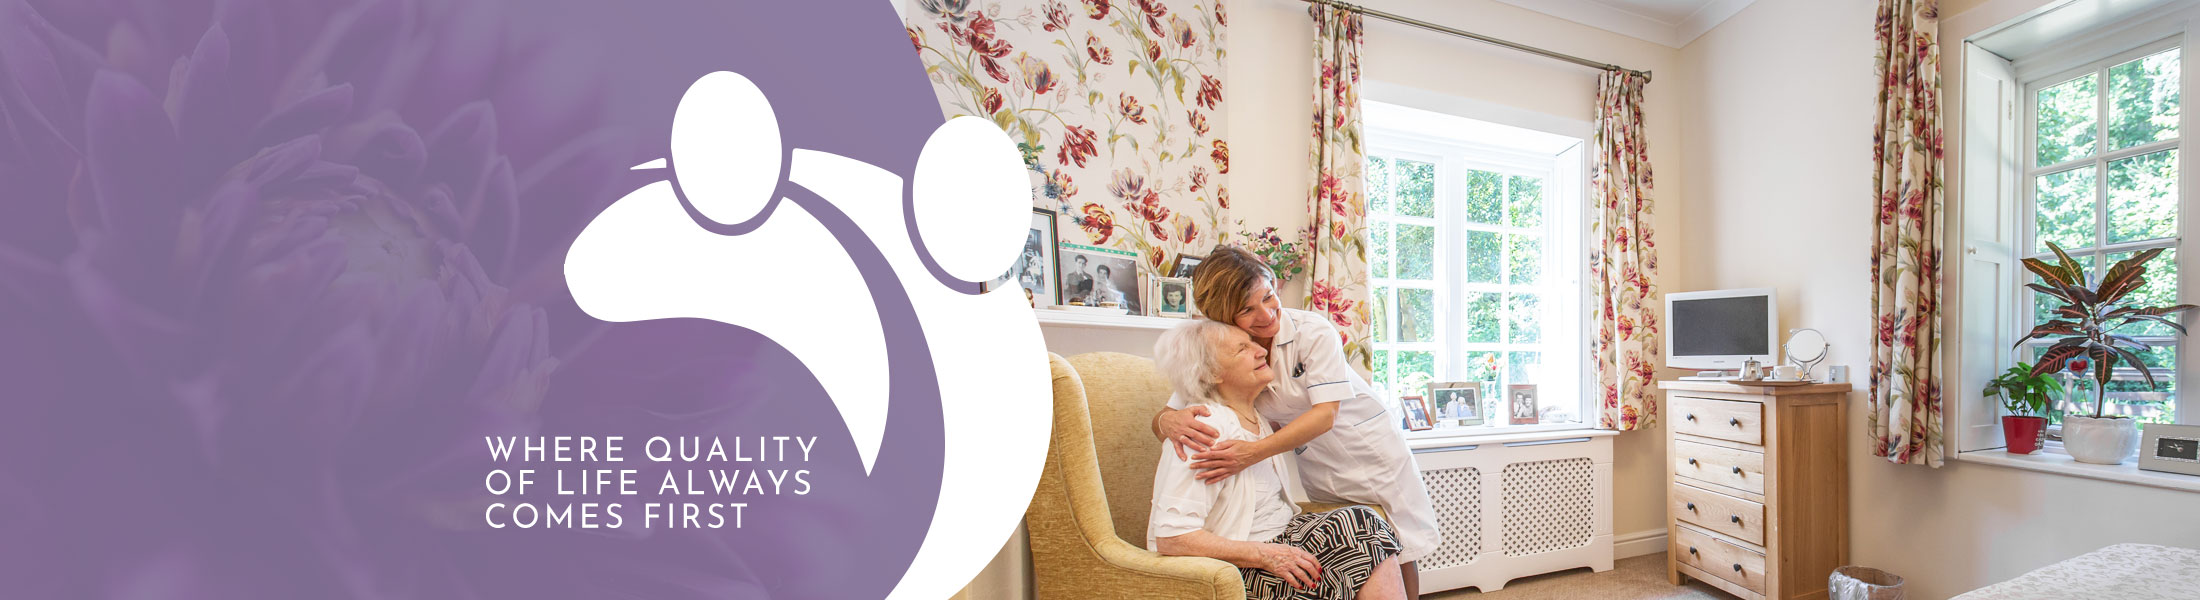 Quality Care Home in Ascot